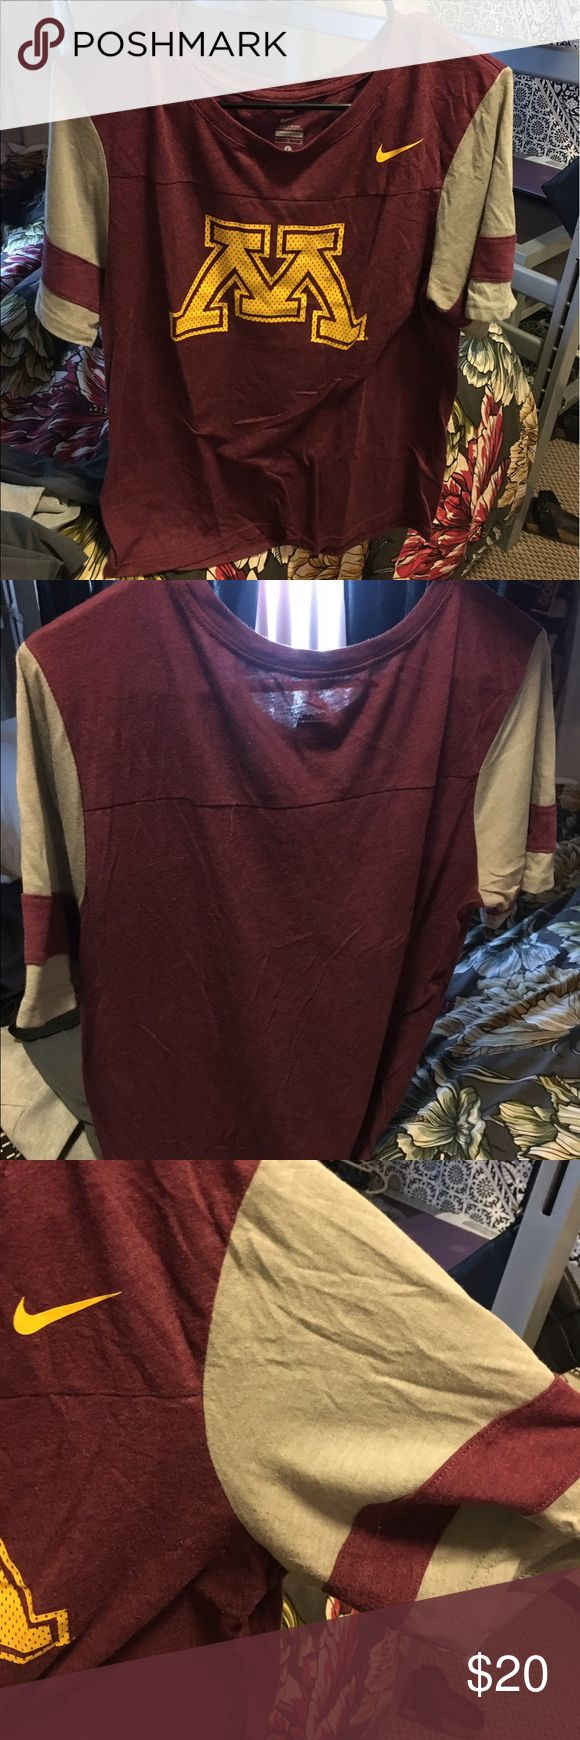 Nike tee with U of MN logo Football style tee for university of Minnesota. Very soft and comfy material. Only worn once. Women's size: L Nike Tops Tees - Short Sleeve